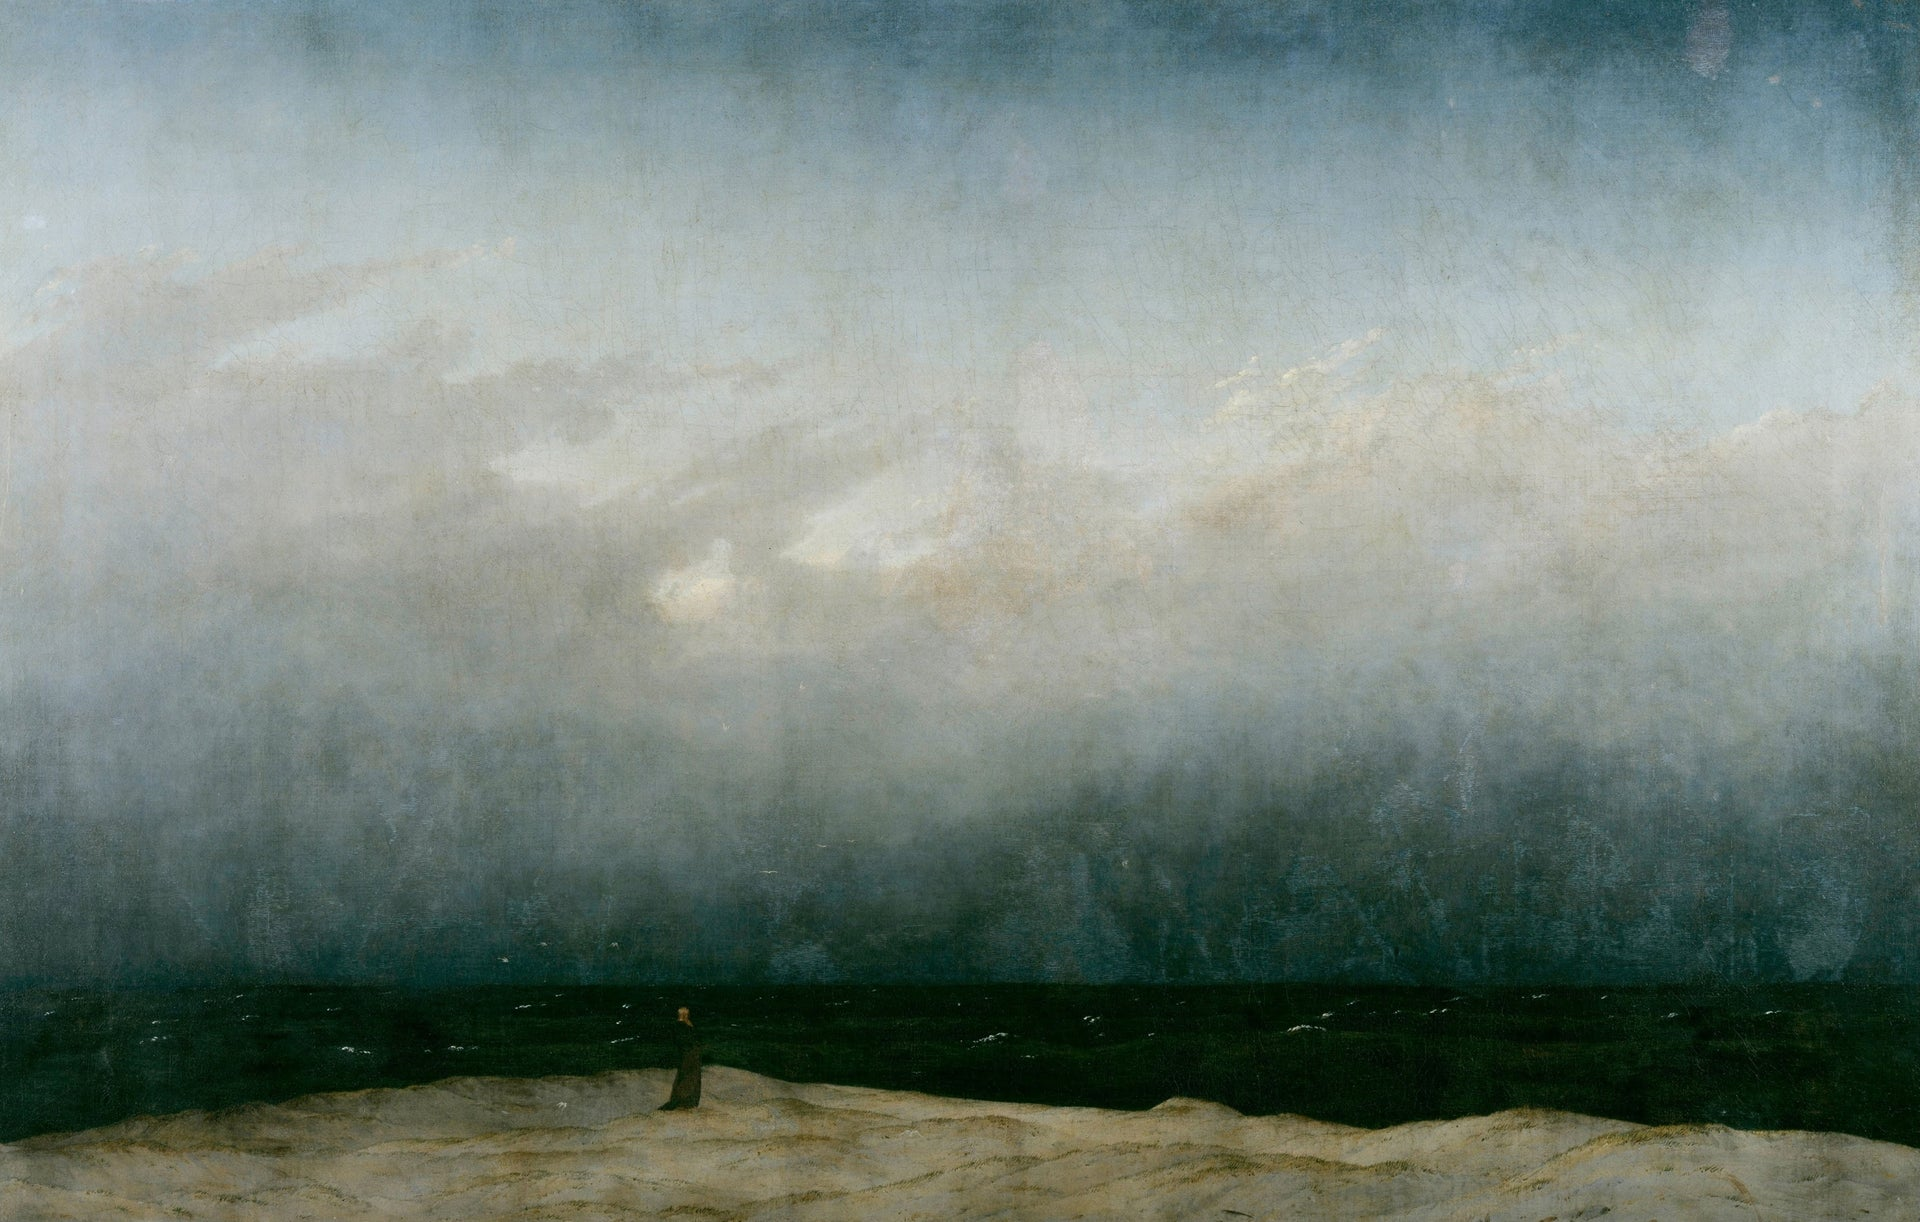 A painting by Caspar David Friedrich titled 'The Monk by the Sea,' showing a dark figure standing on a beach under an overcast sky.